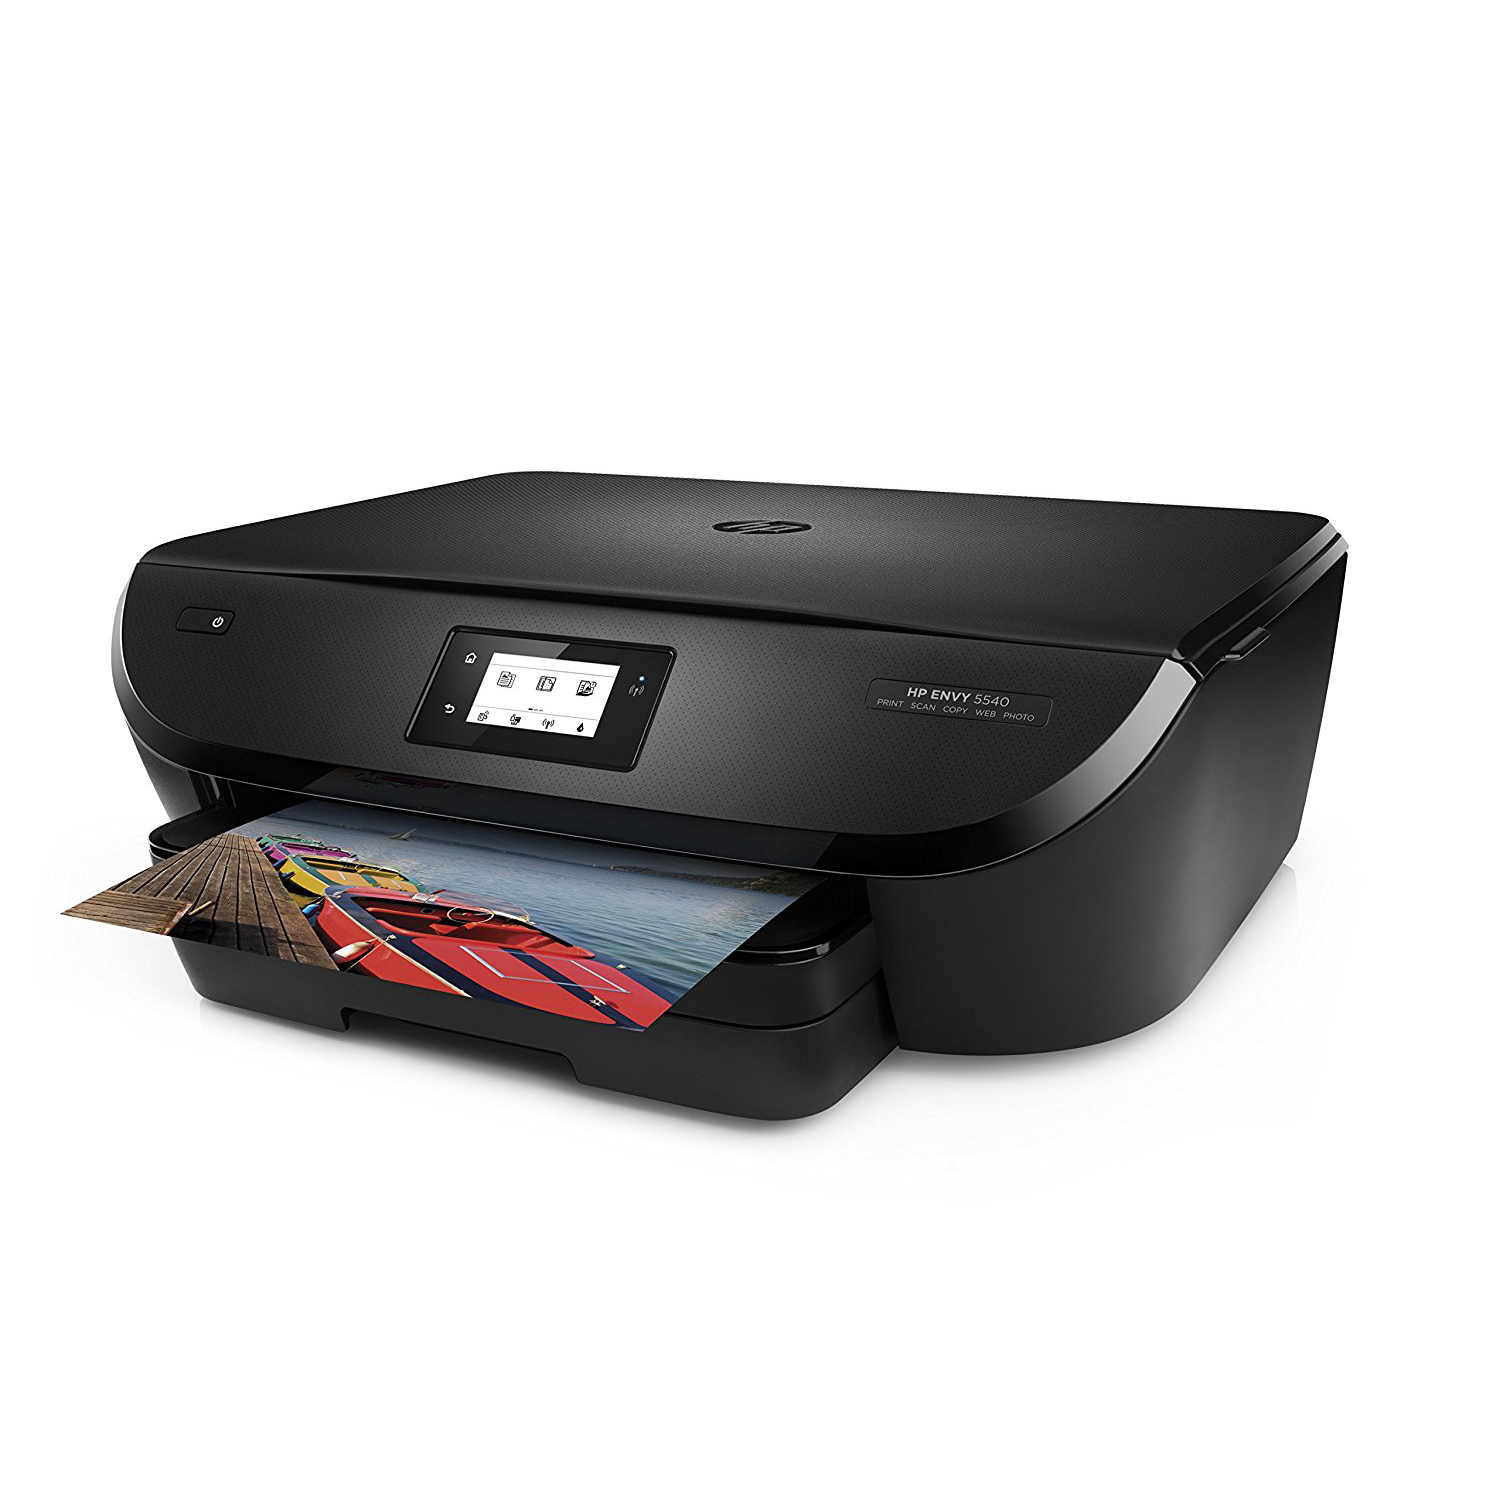 Hp Envy 5540 Wireless All In One Photo Printer With Mobile Printing